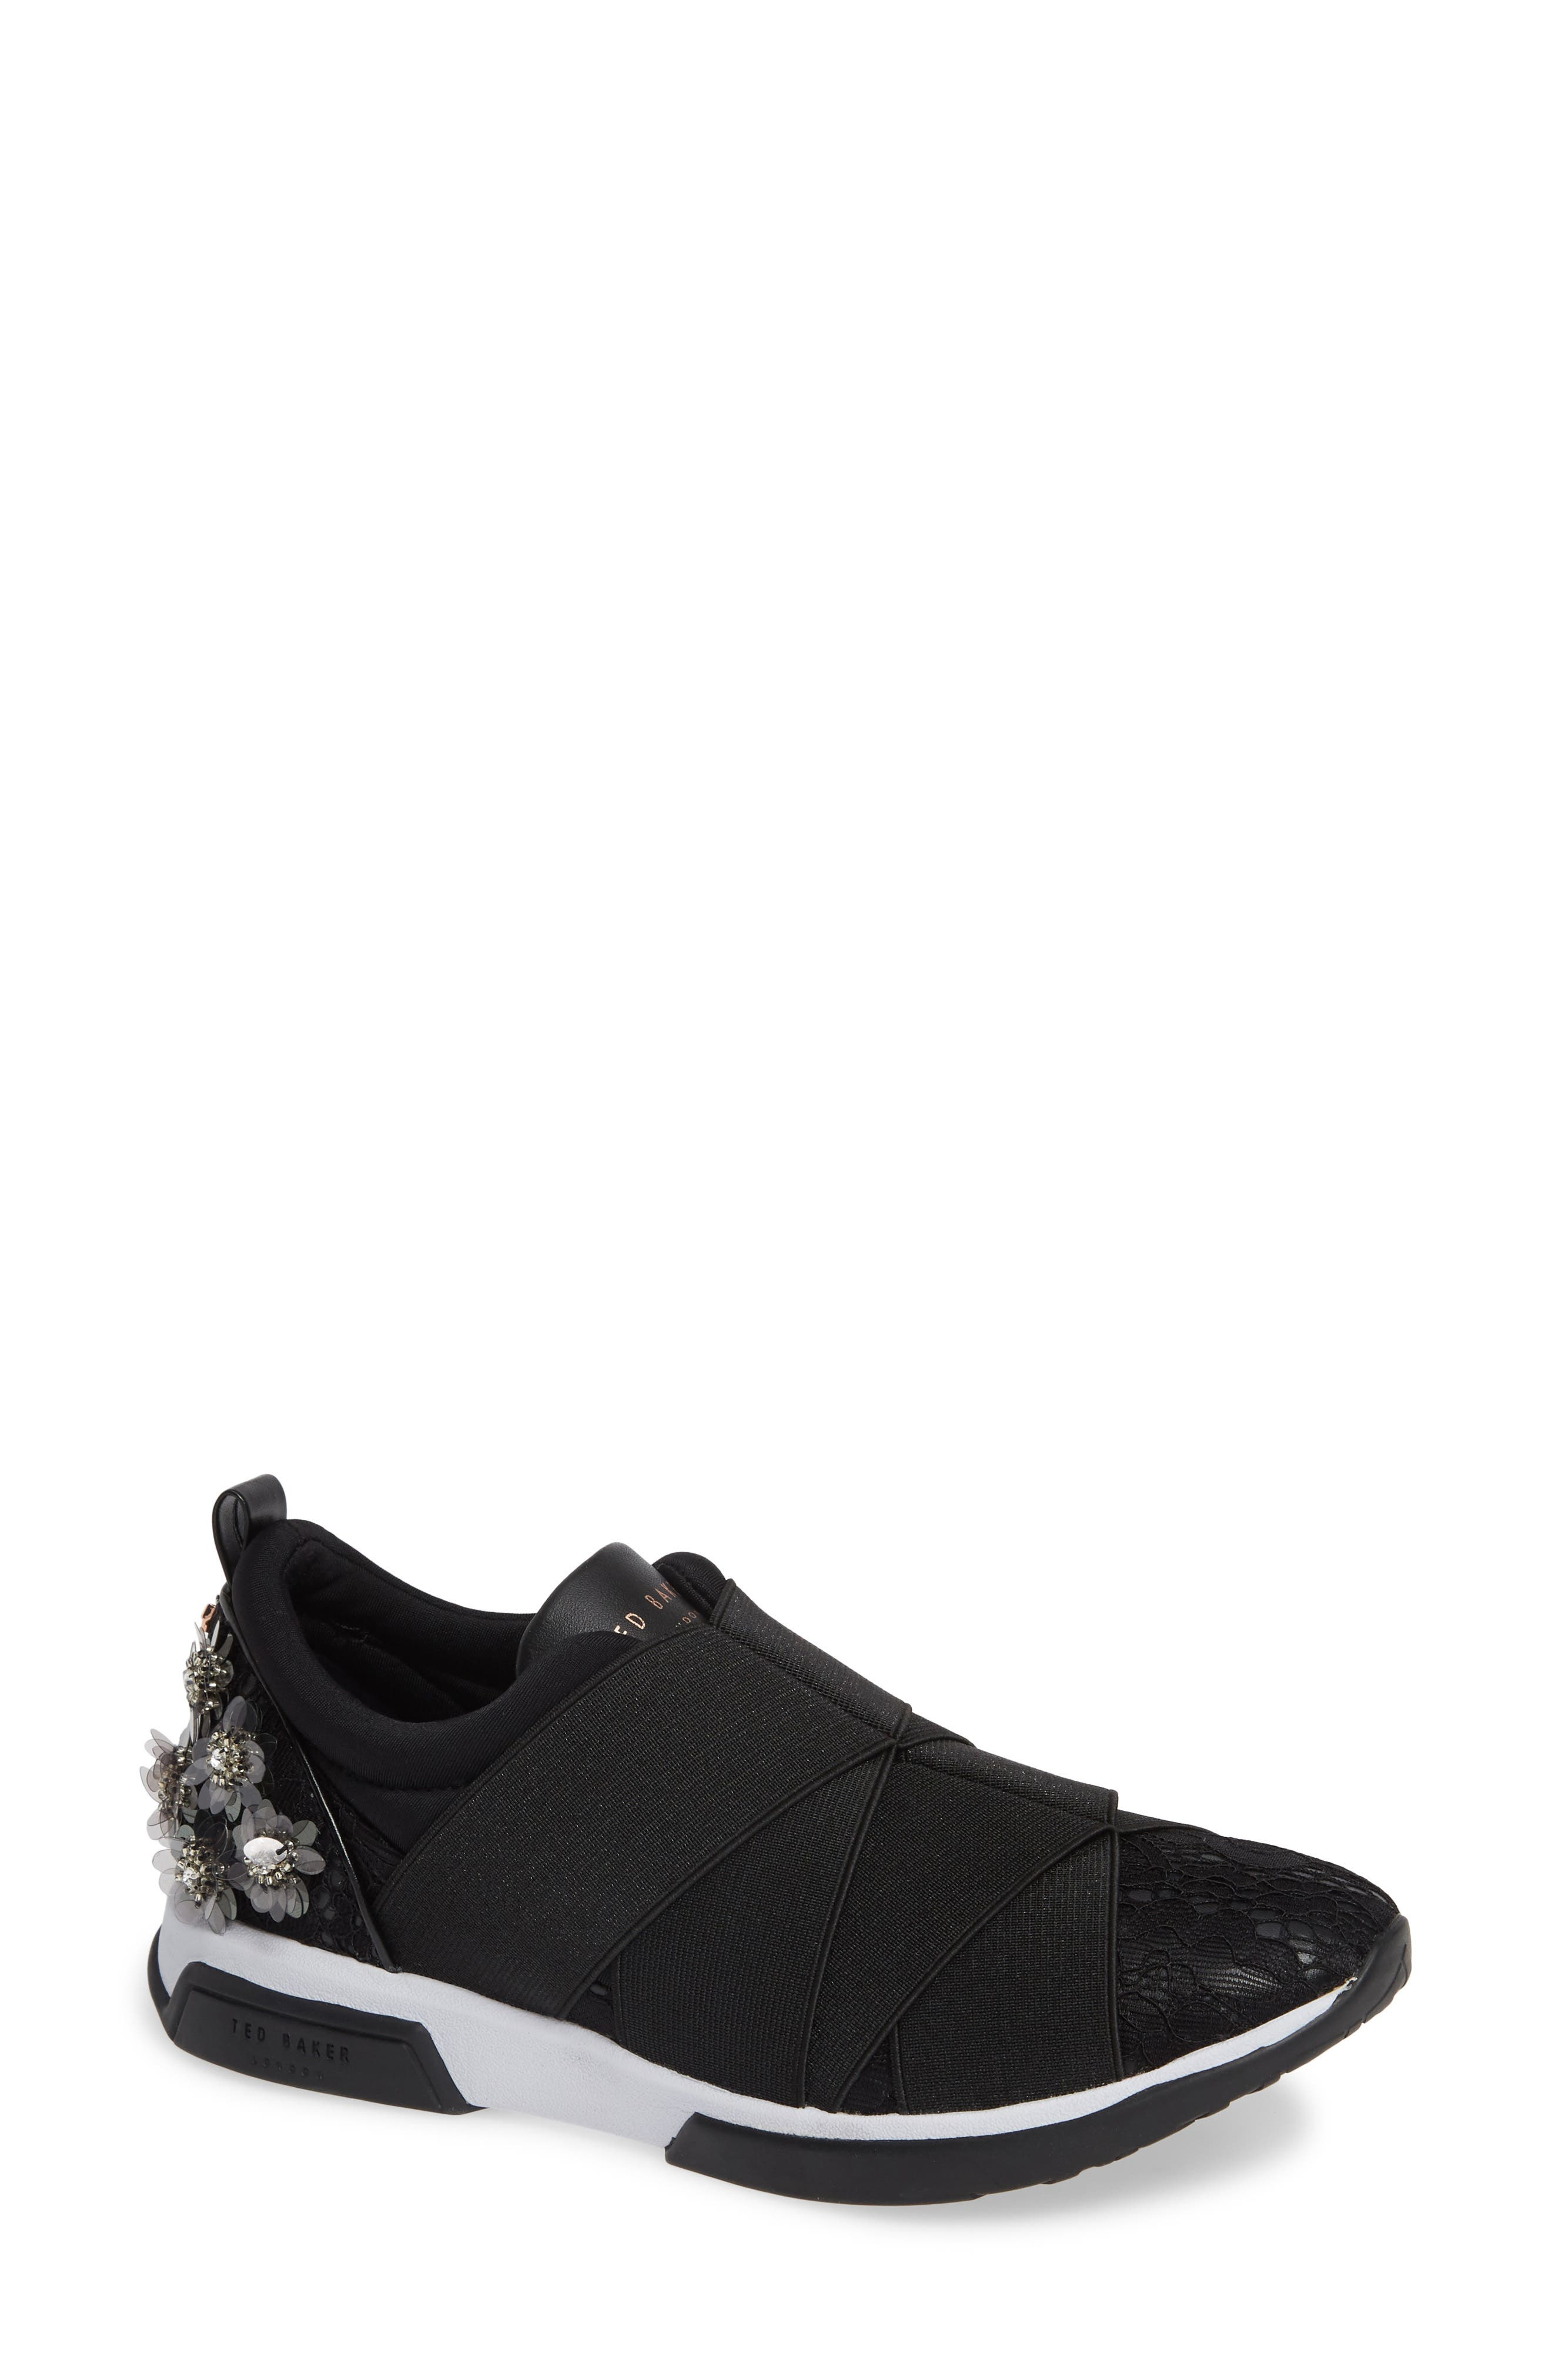 Queanel Sneaker,                             Main thumbnail 1, color,                             BLACK FABRIC